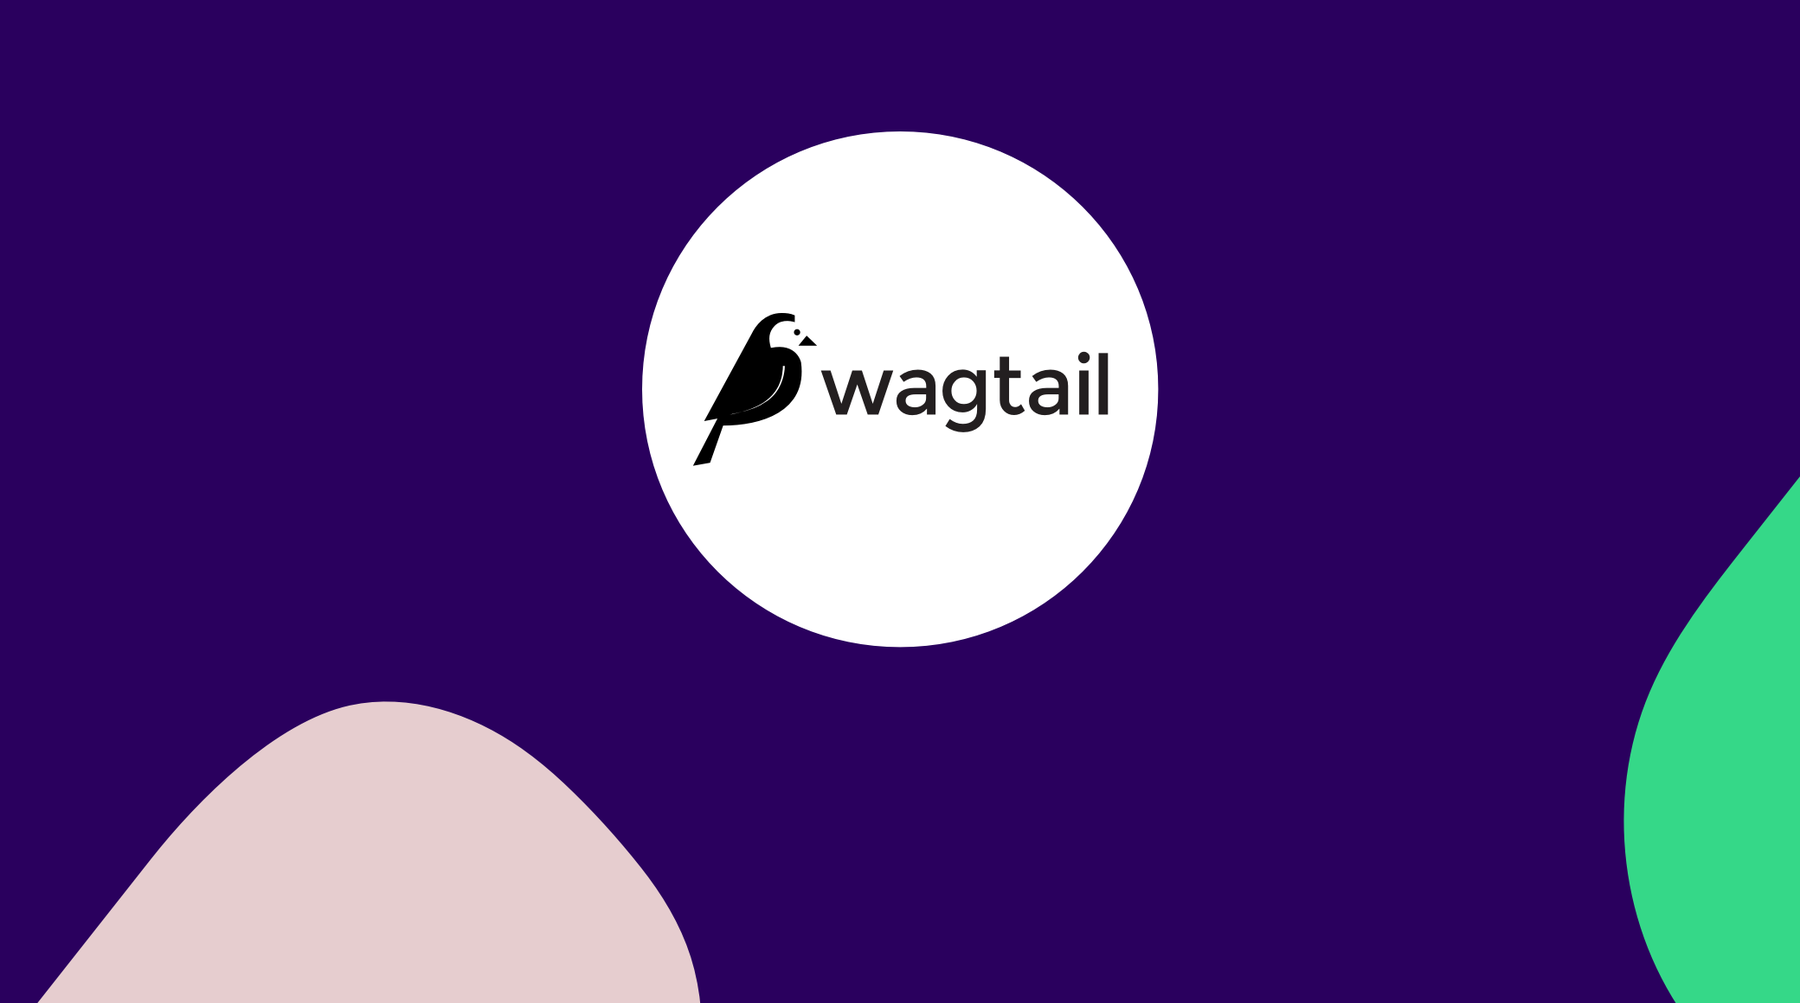 wagtail_1_HVE2fbC.png